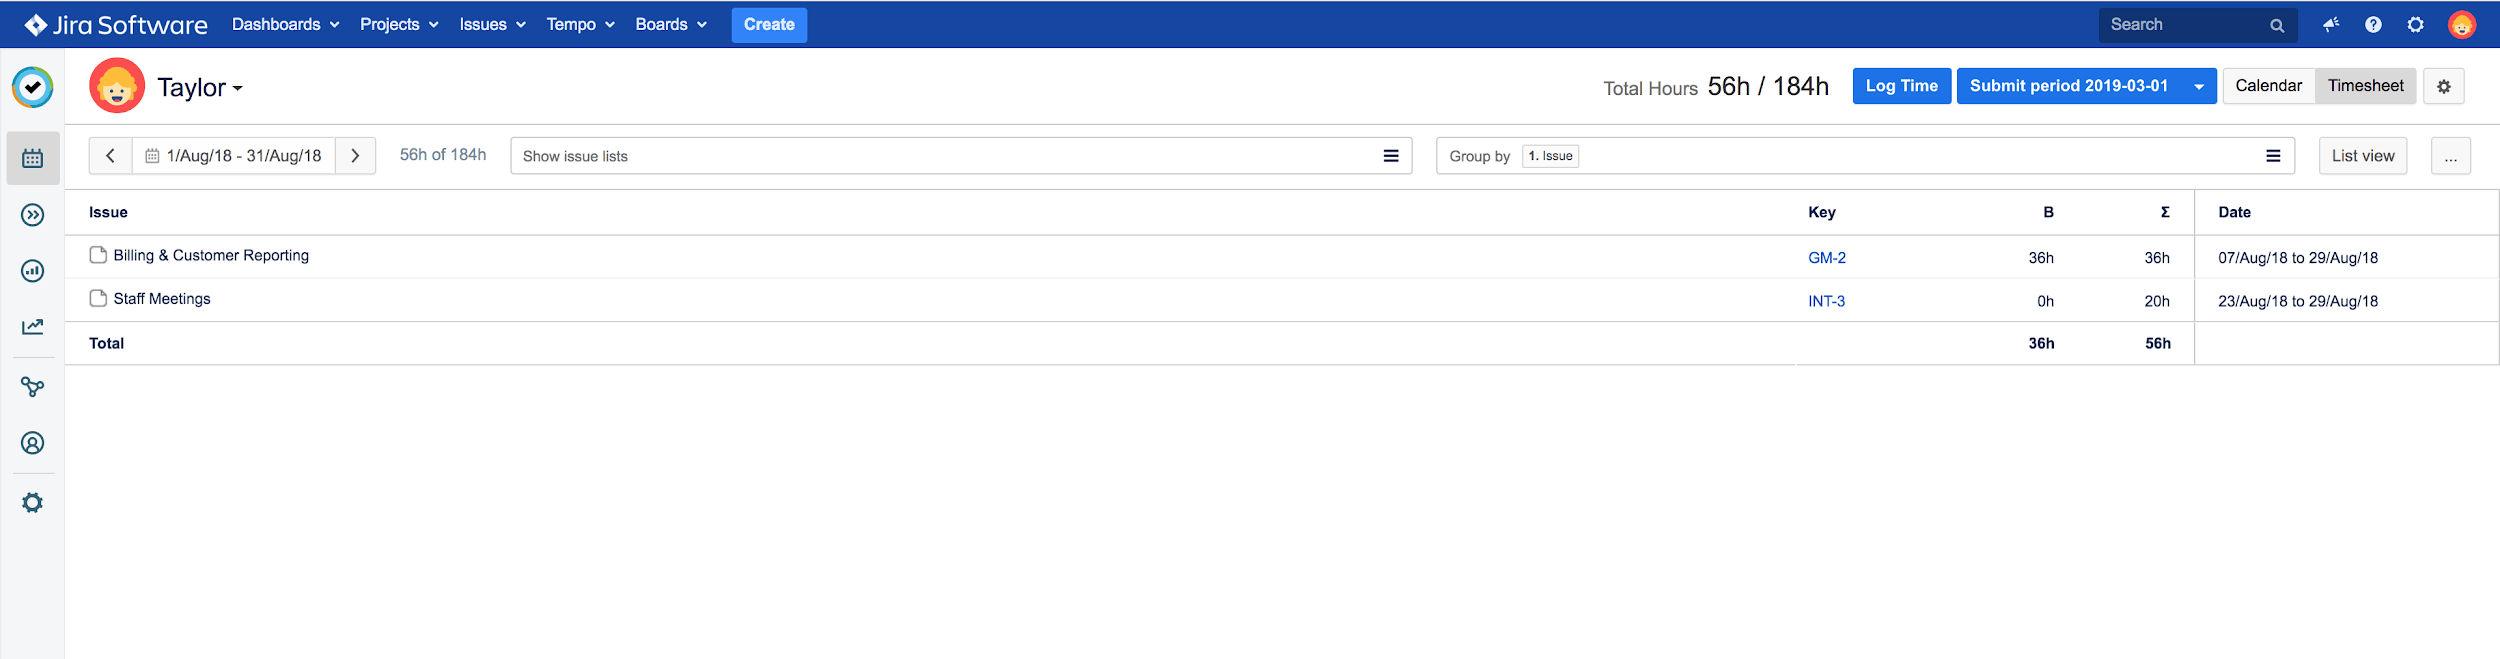 Timesheet view for Jira